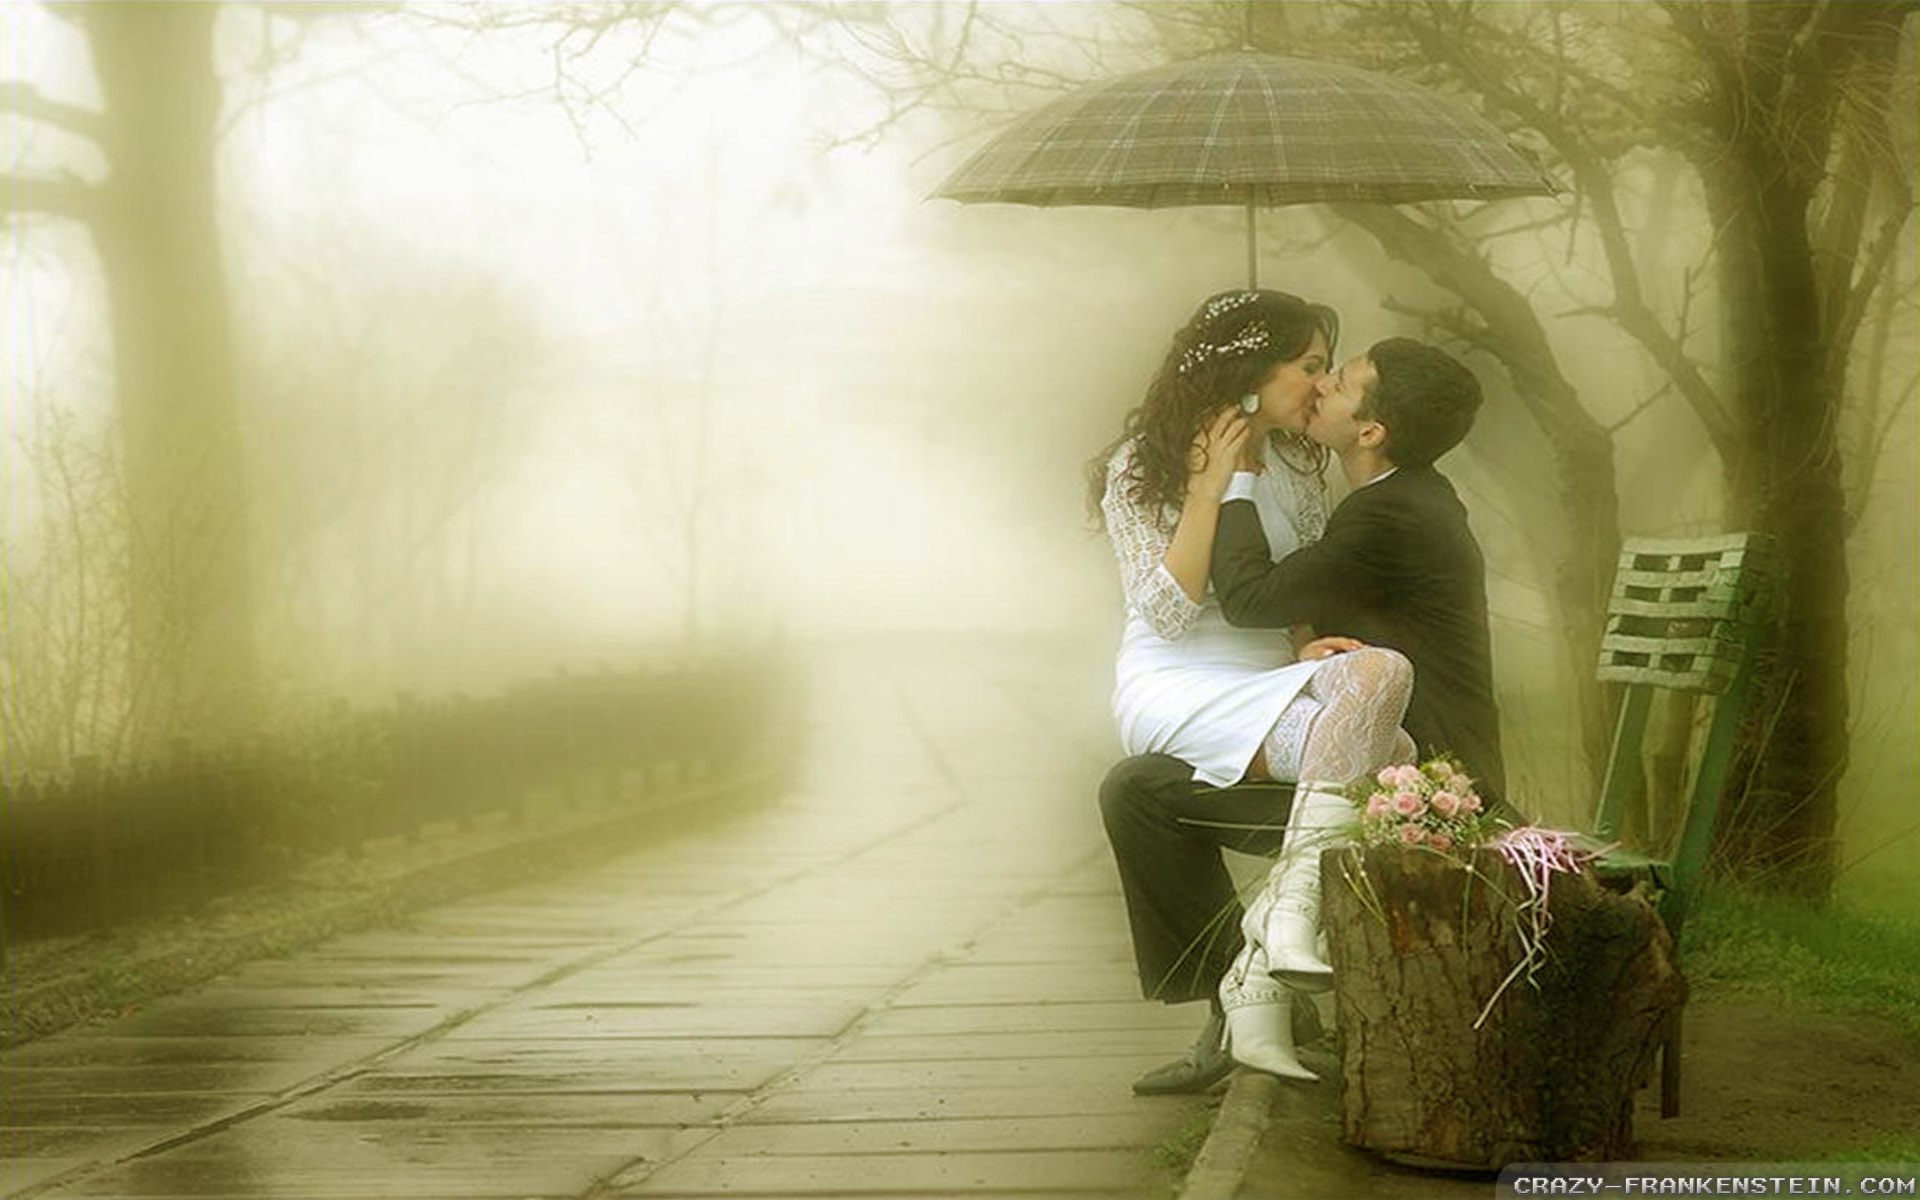 Beautiful Romantic Love Hd Wallpapers For Couples: Romantic Images Hd Wallpapers (50 Wallpapers)